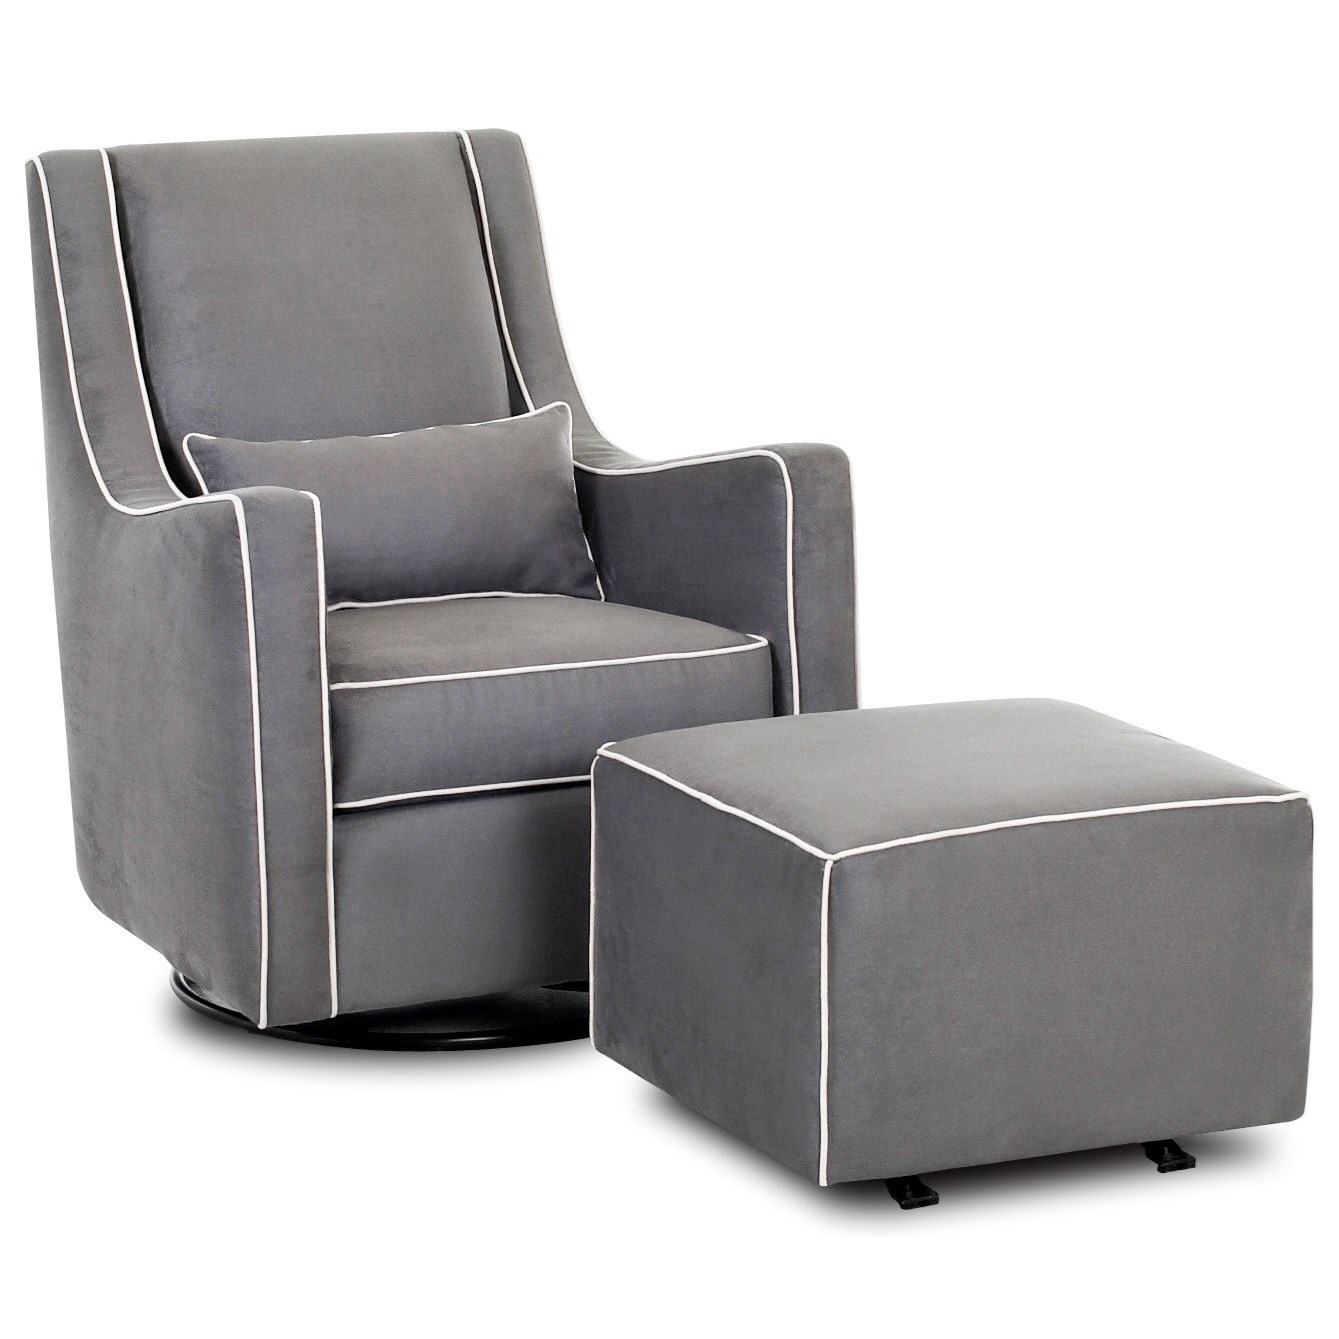 cheap glider chair wood klaussner chairs and accents contemporary lacey swivel accentslacey gliding ottoman